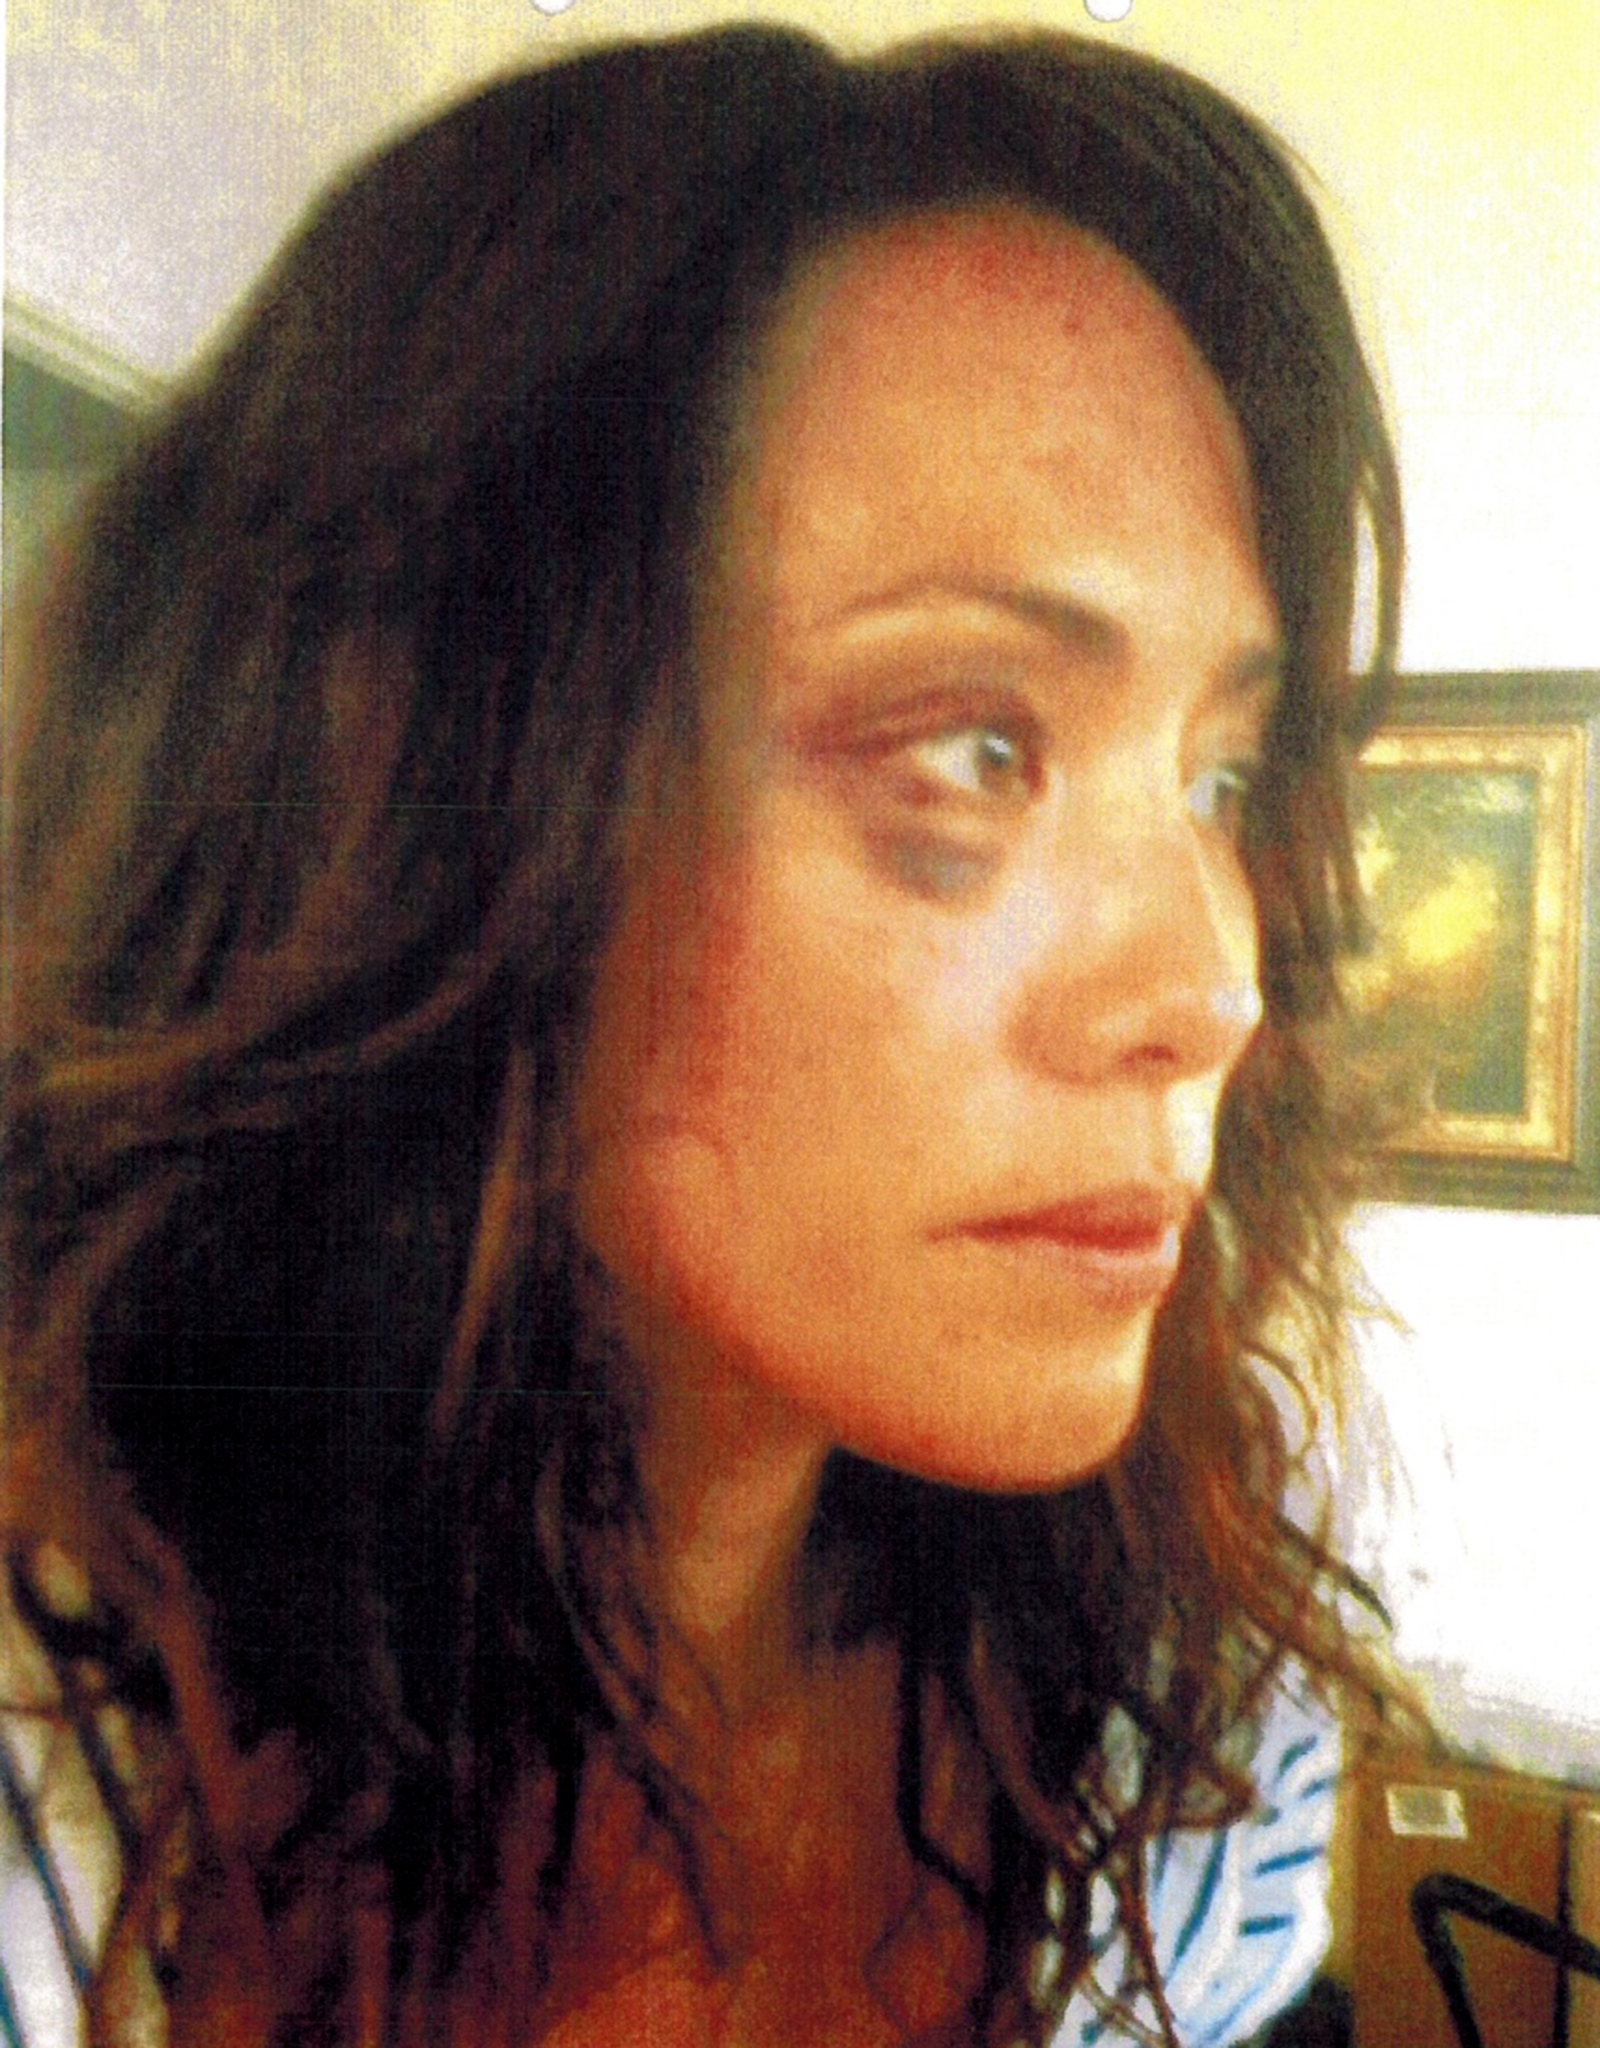 More of Michelle's photo evidence (LA Superior Court)